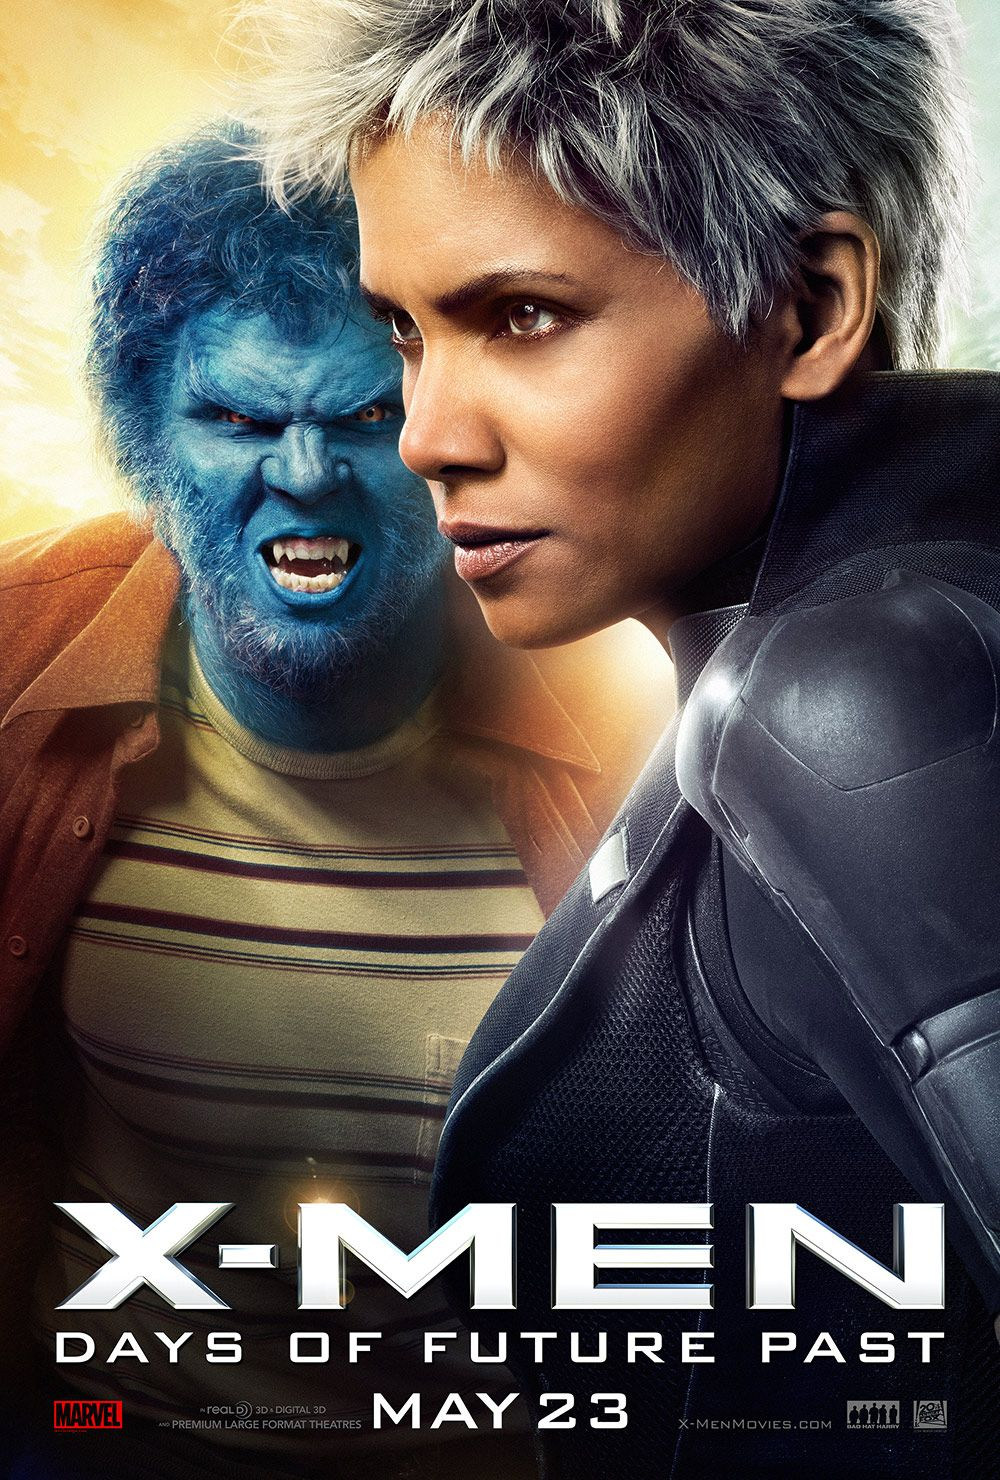 Pin By A R C H I V E On Xmen Marvel Movie Posters Marvel X Men